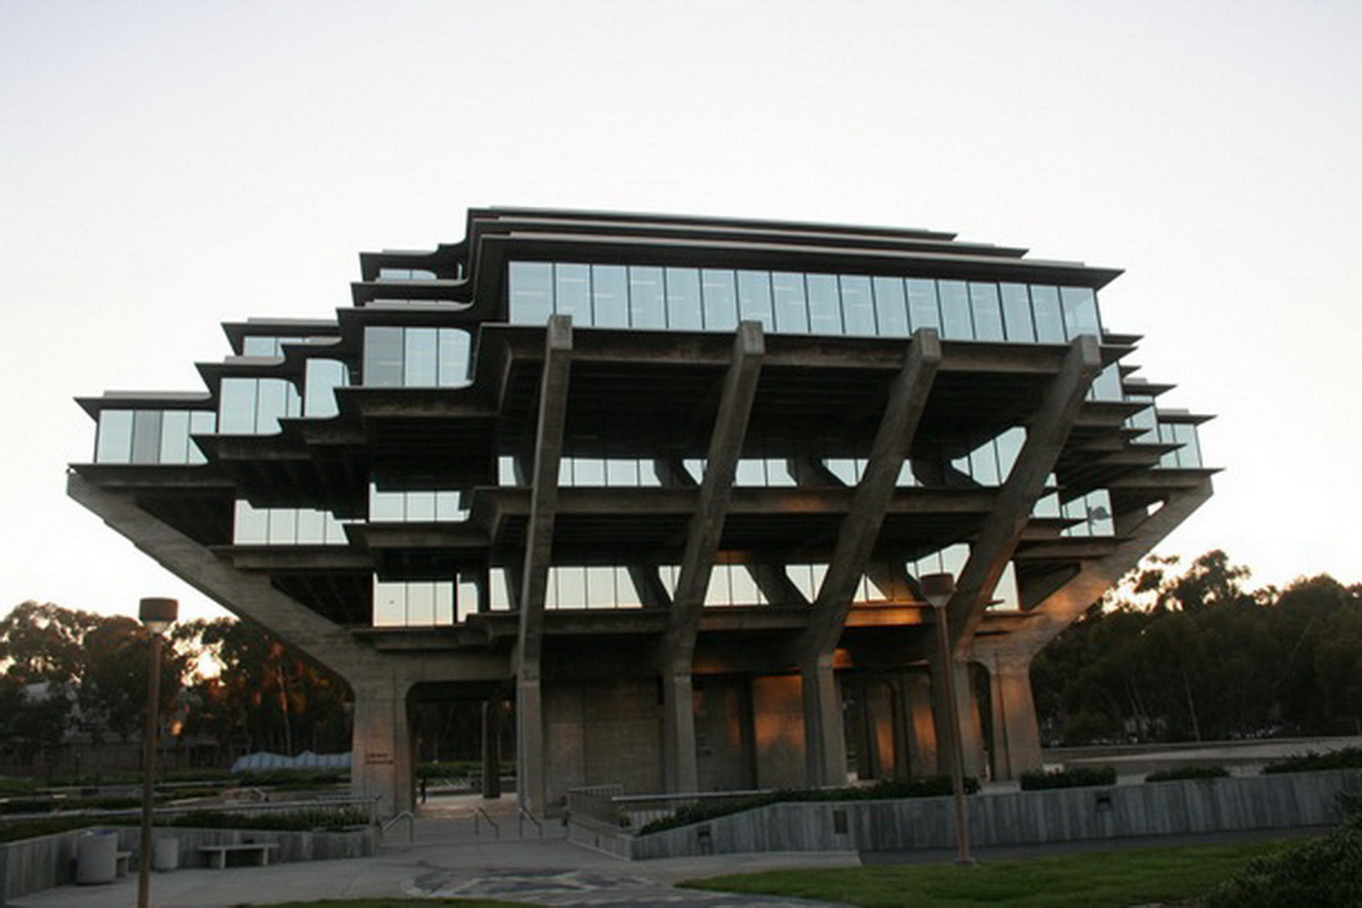 architecture unique buildings library diego san california geisel wallpapers cool building crazy portal amazing most around homes strange university universidad